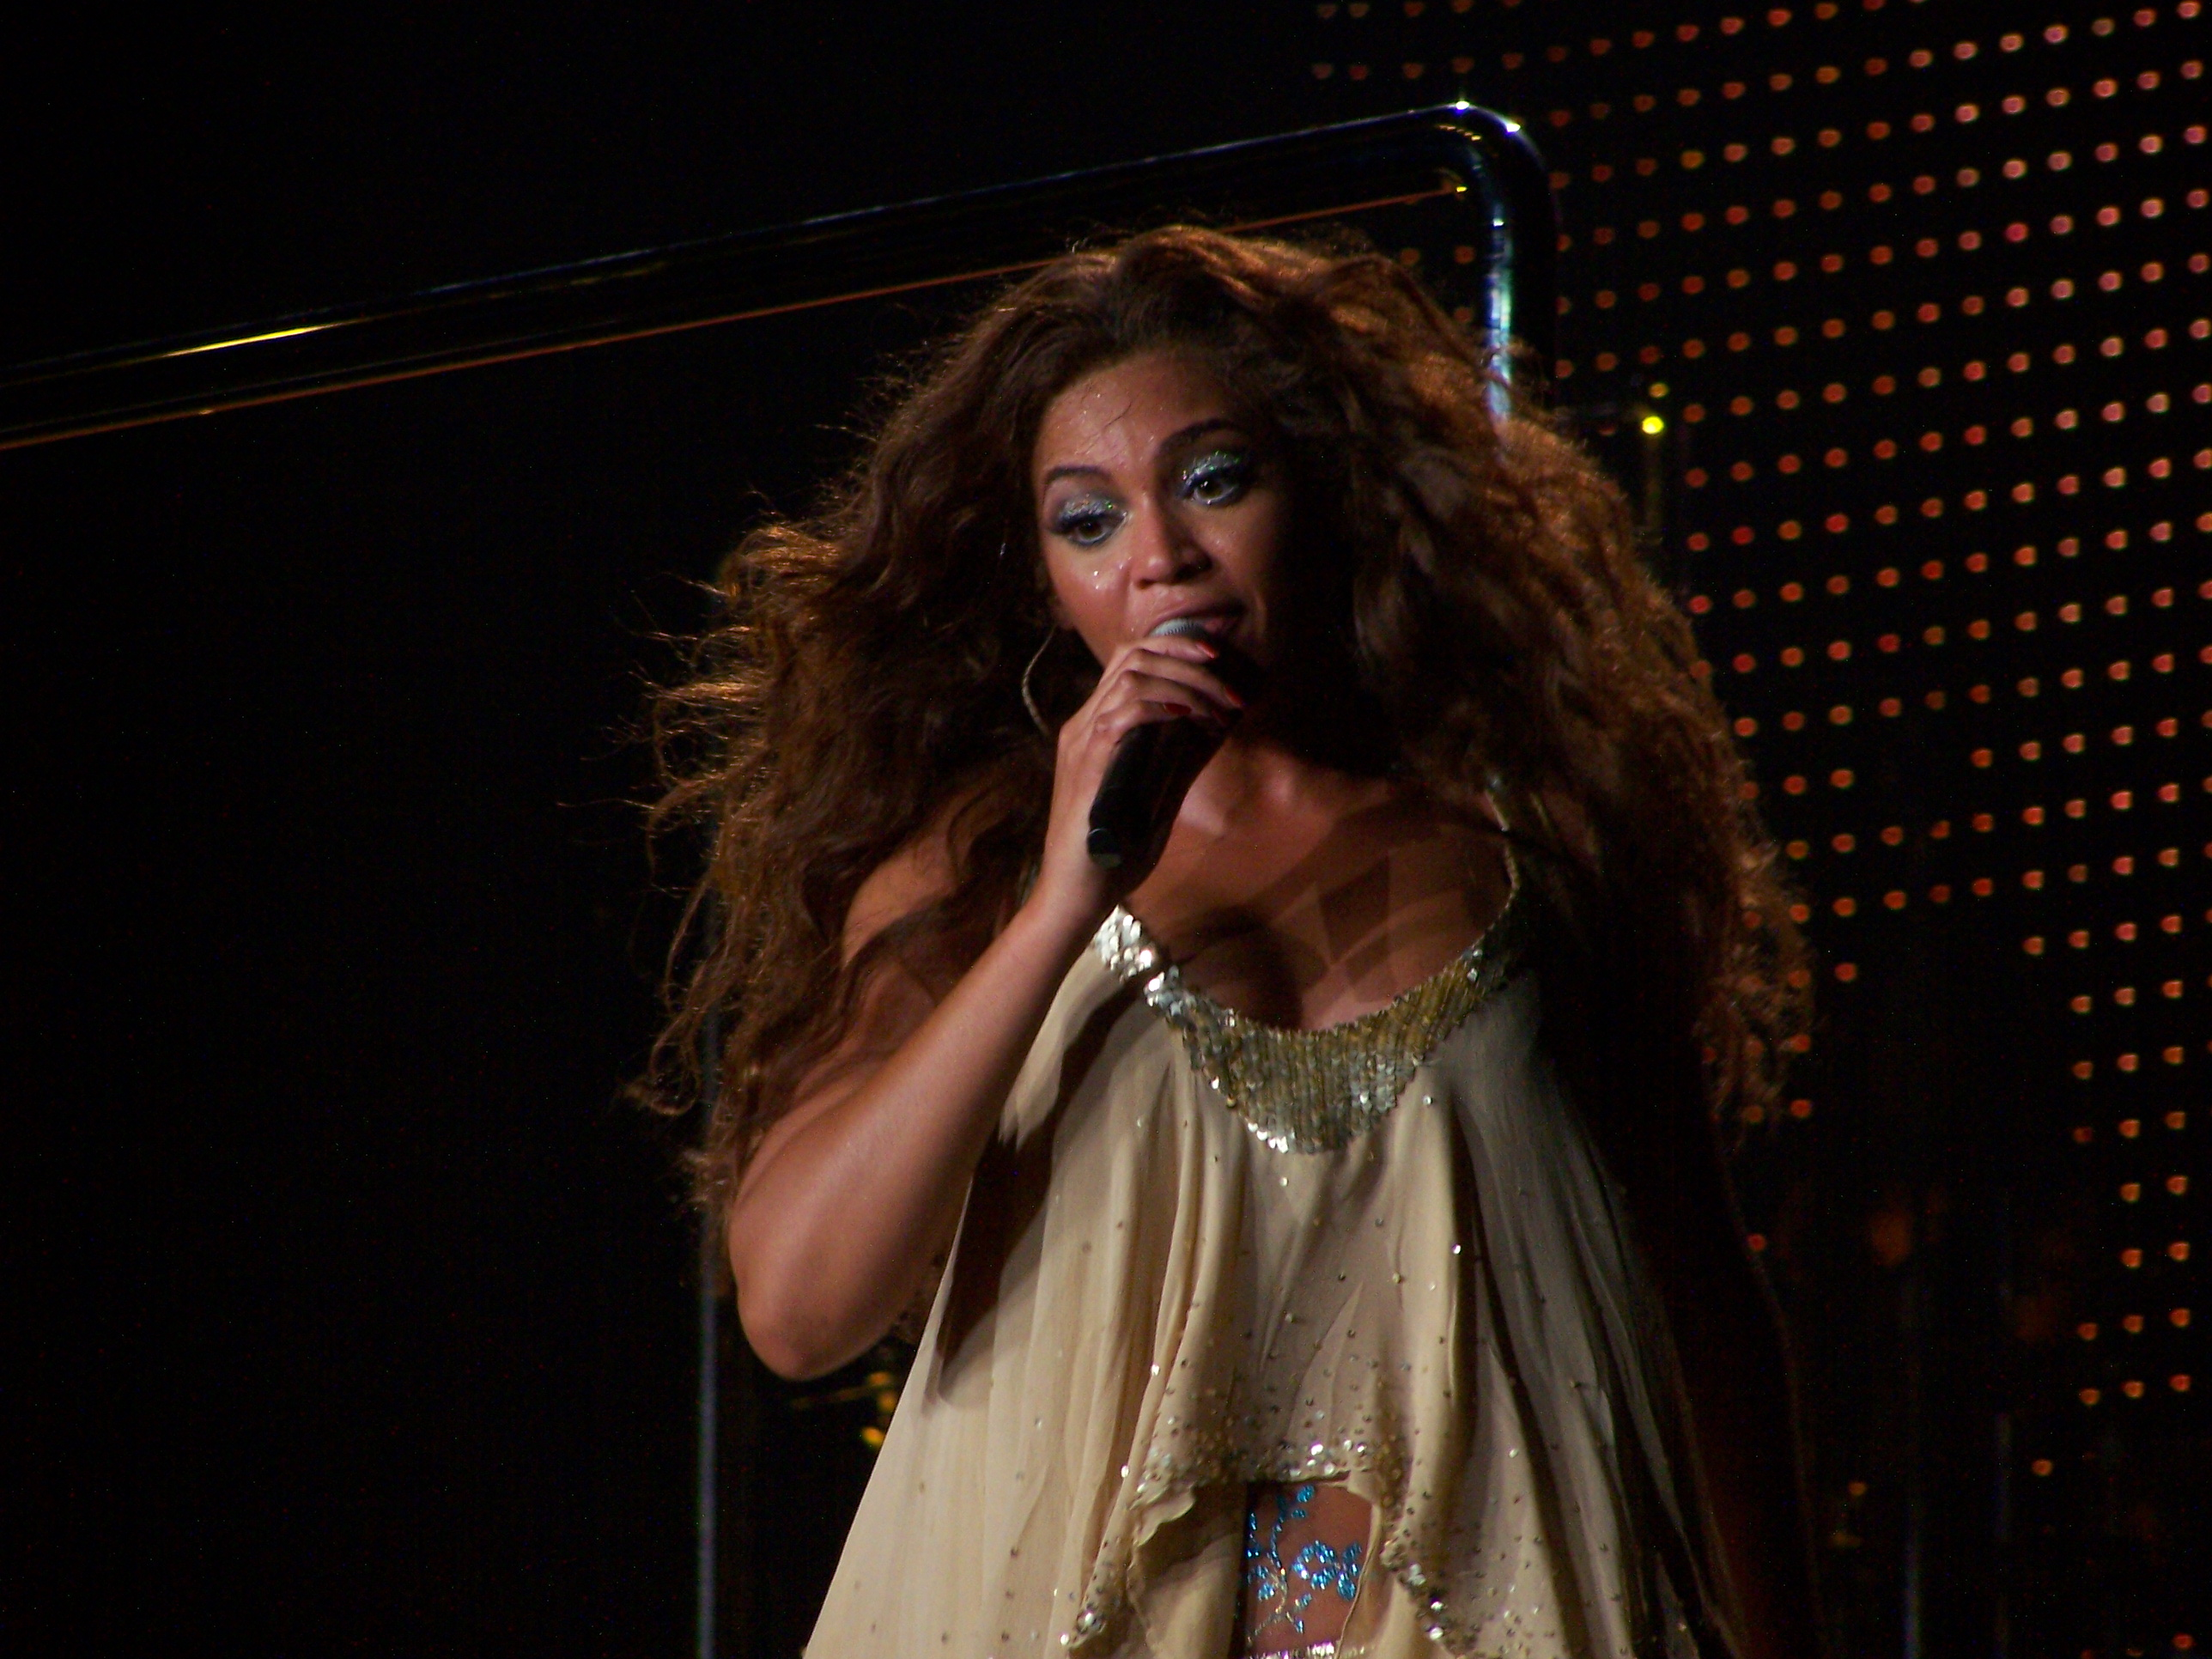 File:Another Beyonce photo - Barcelona 2007.jpg - Wikimedia Commons